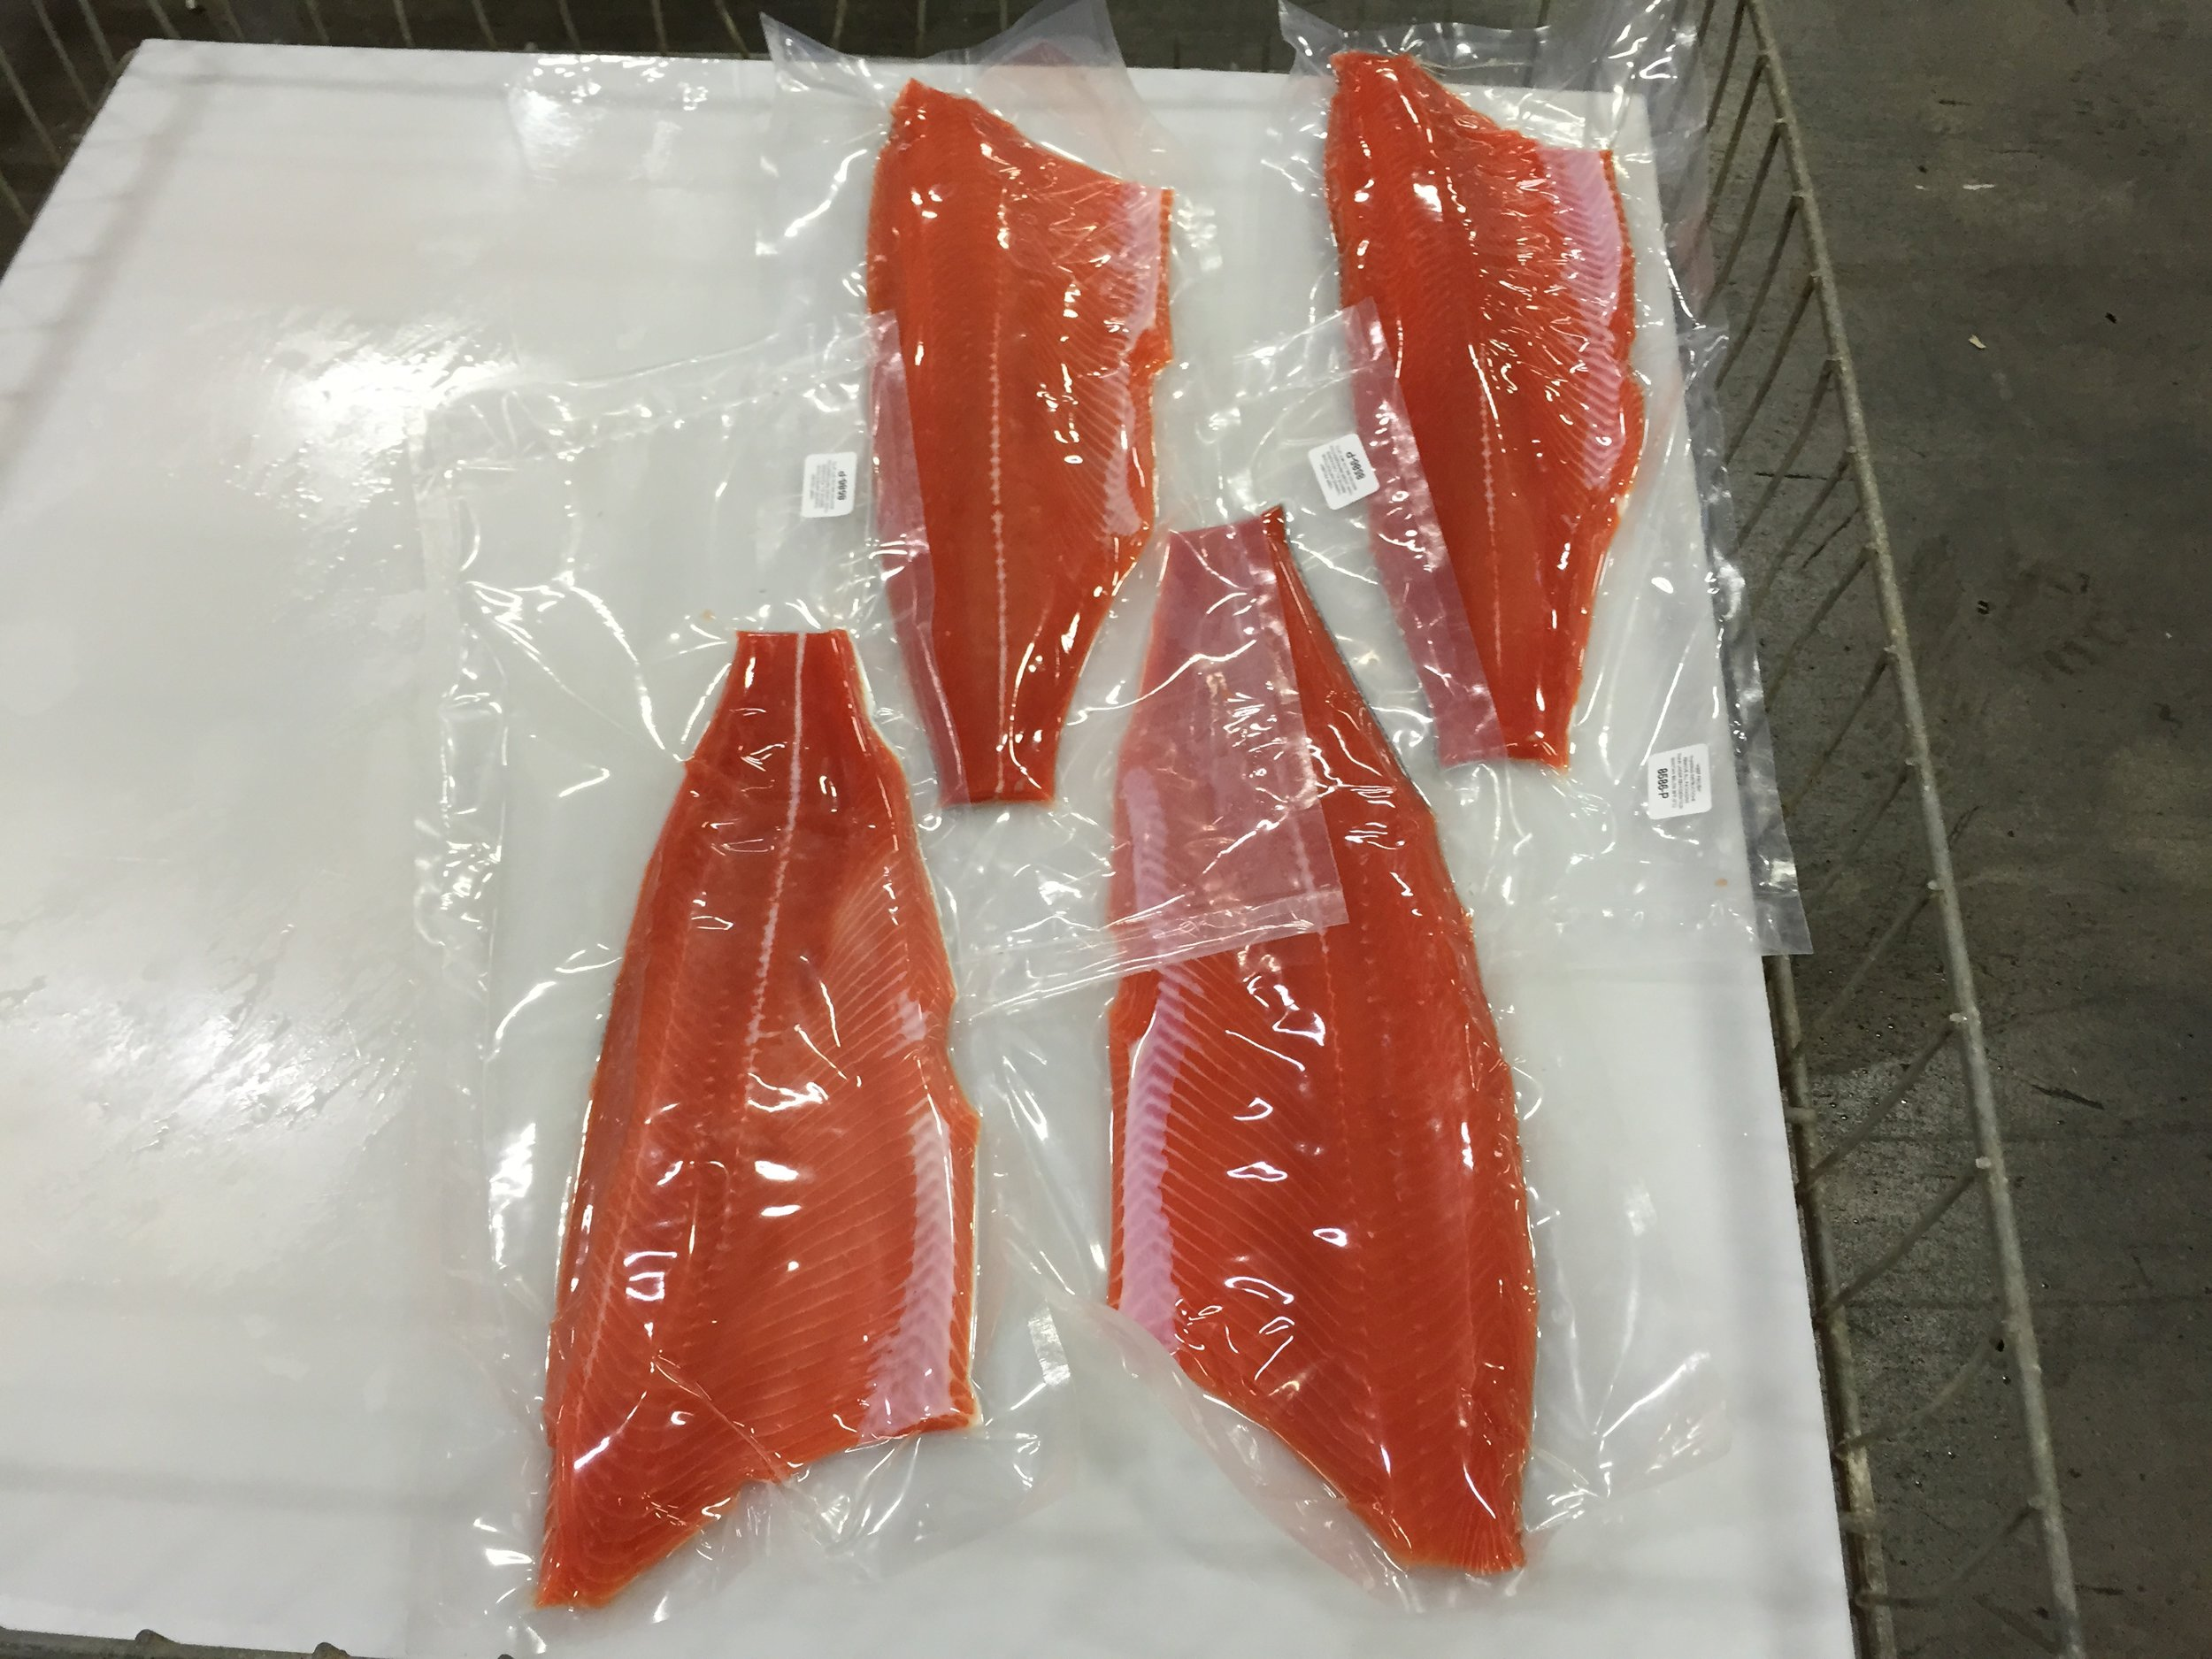 Coho fillets packaged